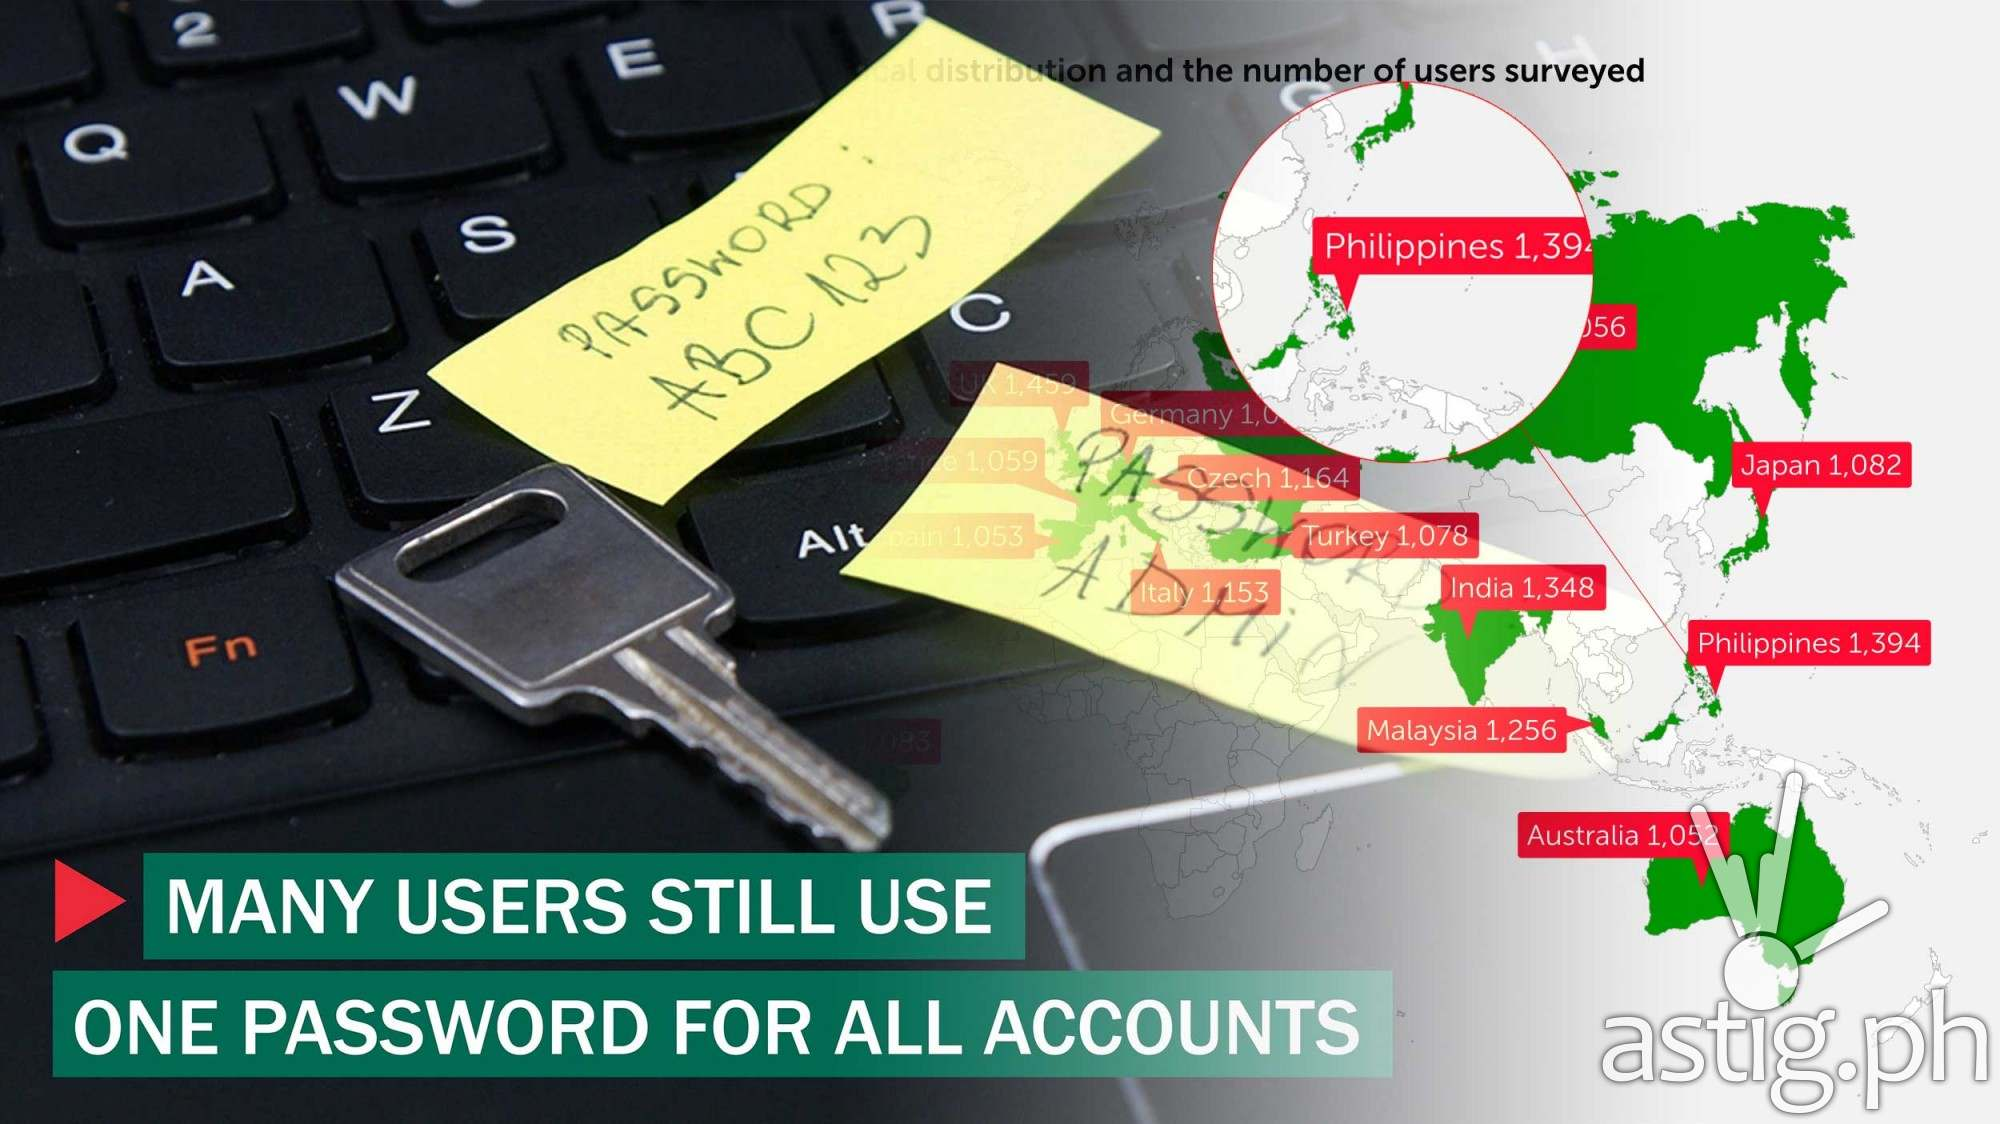 Many users still use one password for all accounts